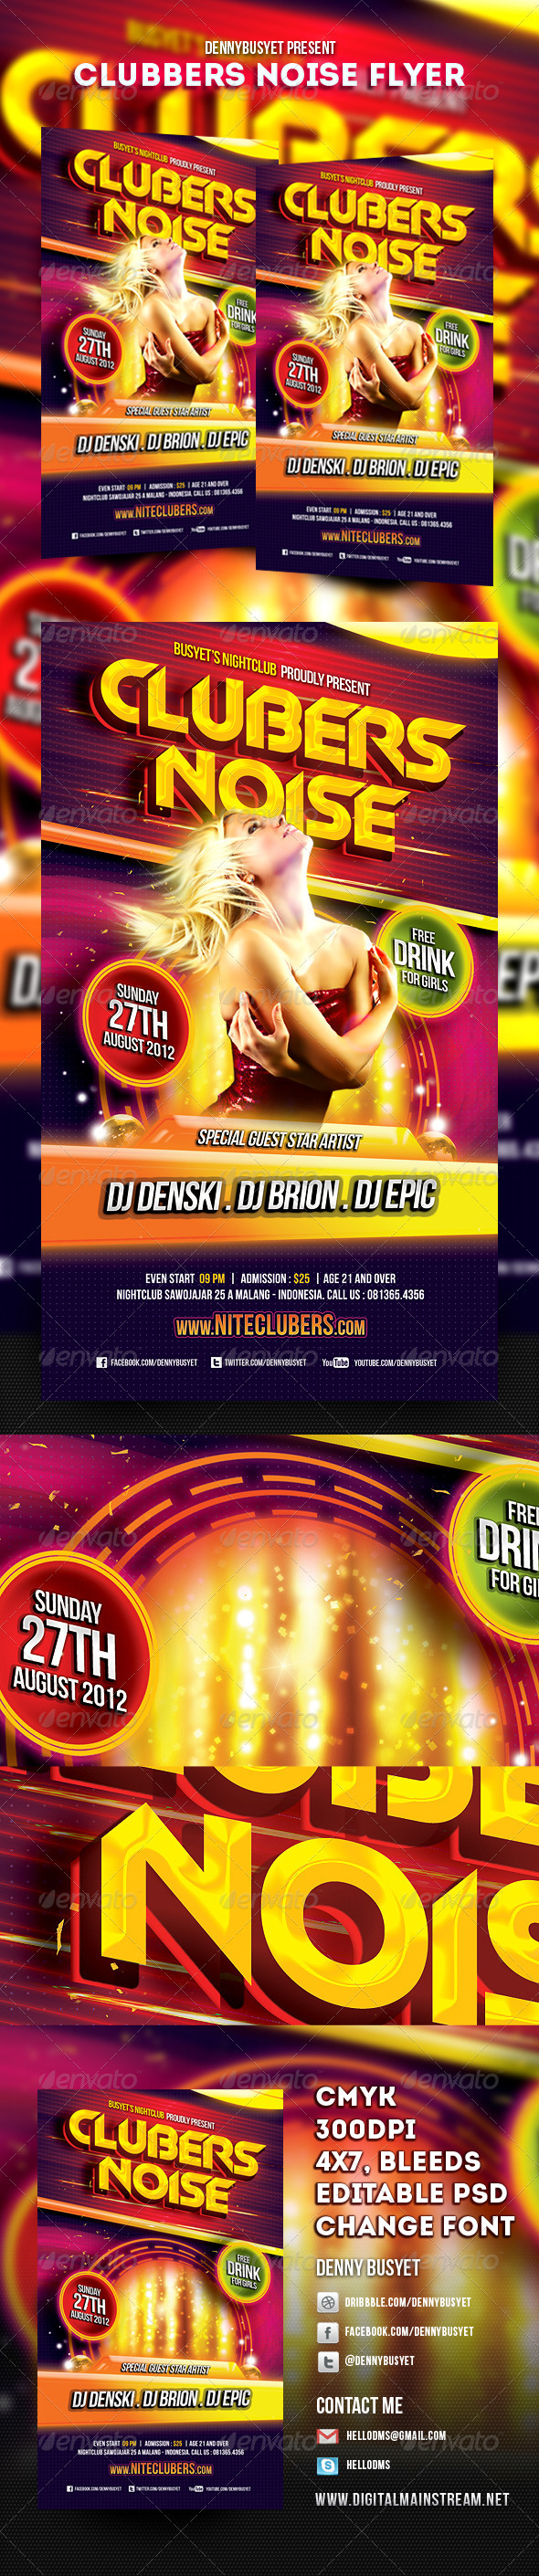 Clubbers Noise Nightclub Flyer Template - Events Flyers